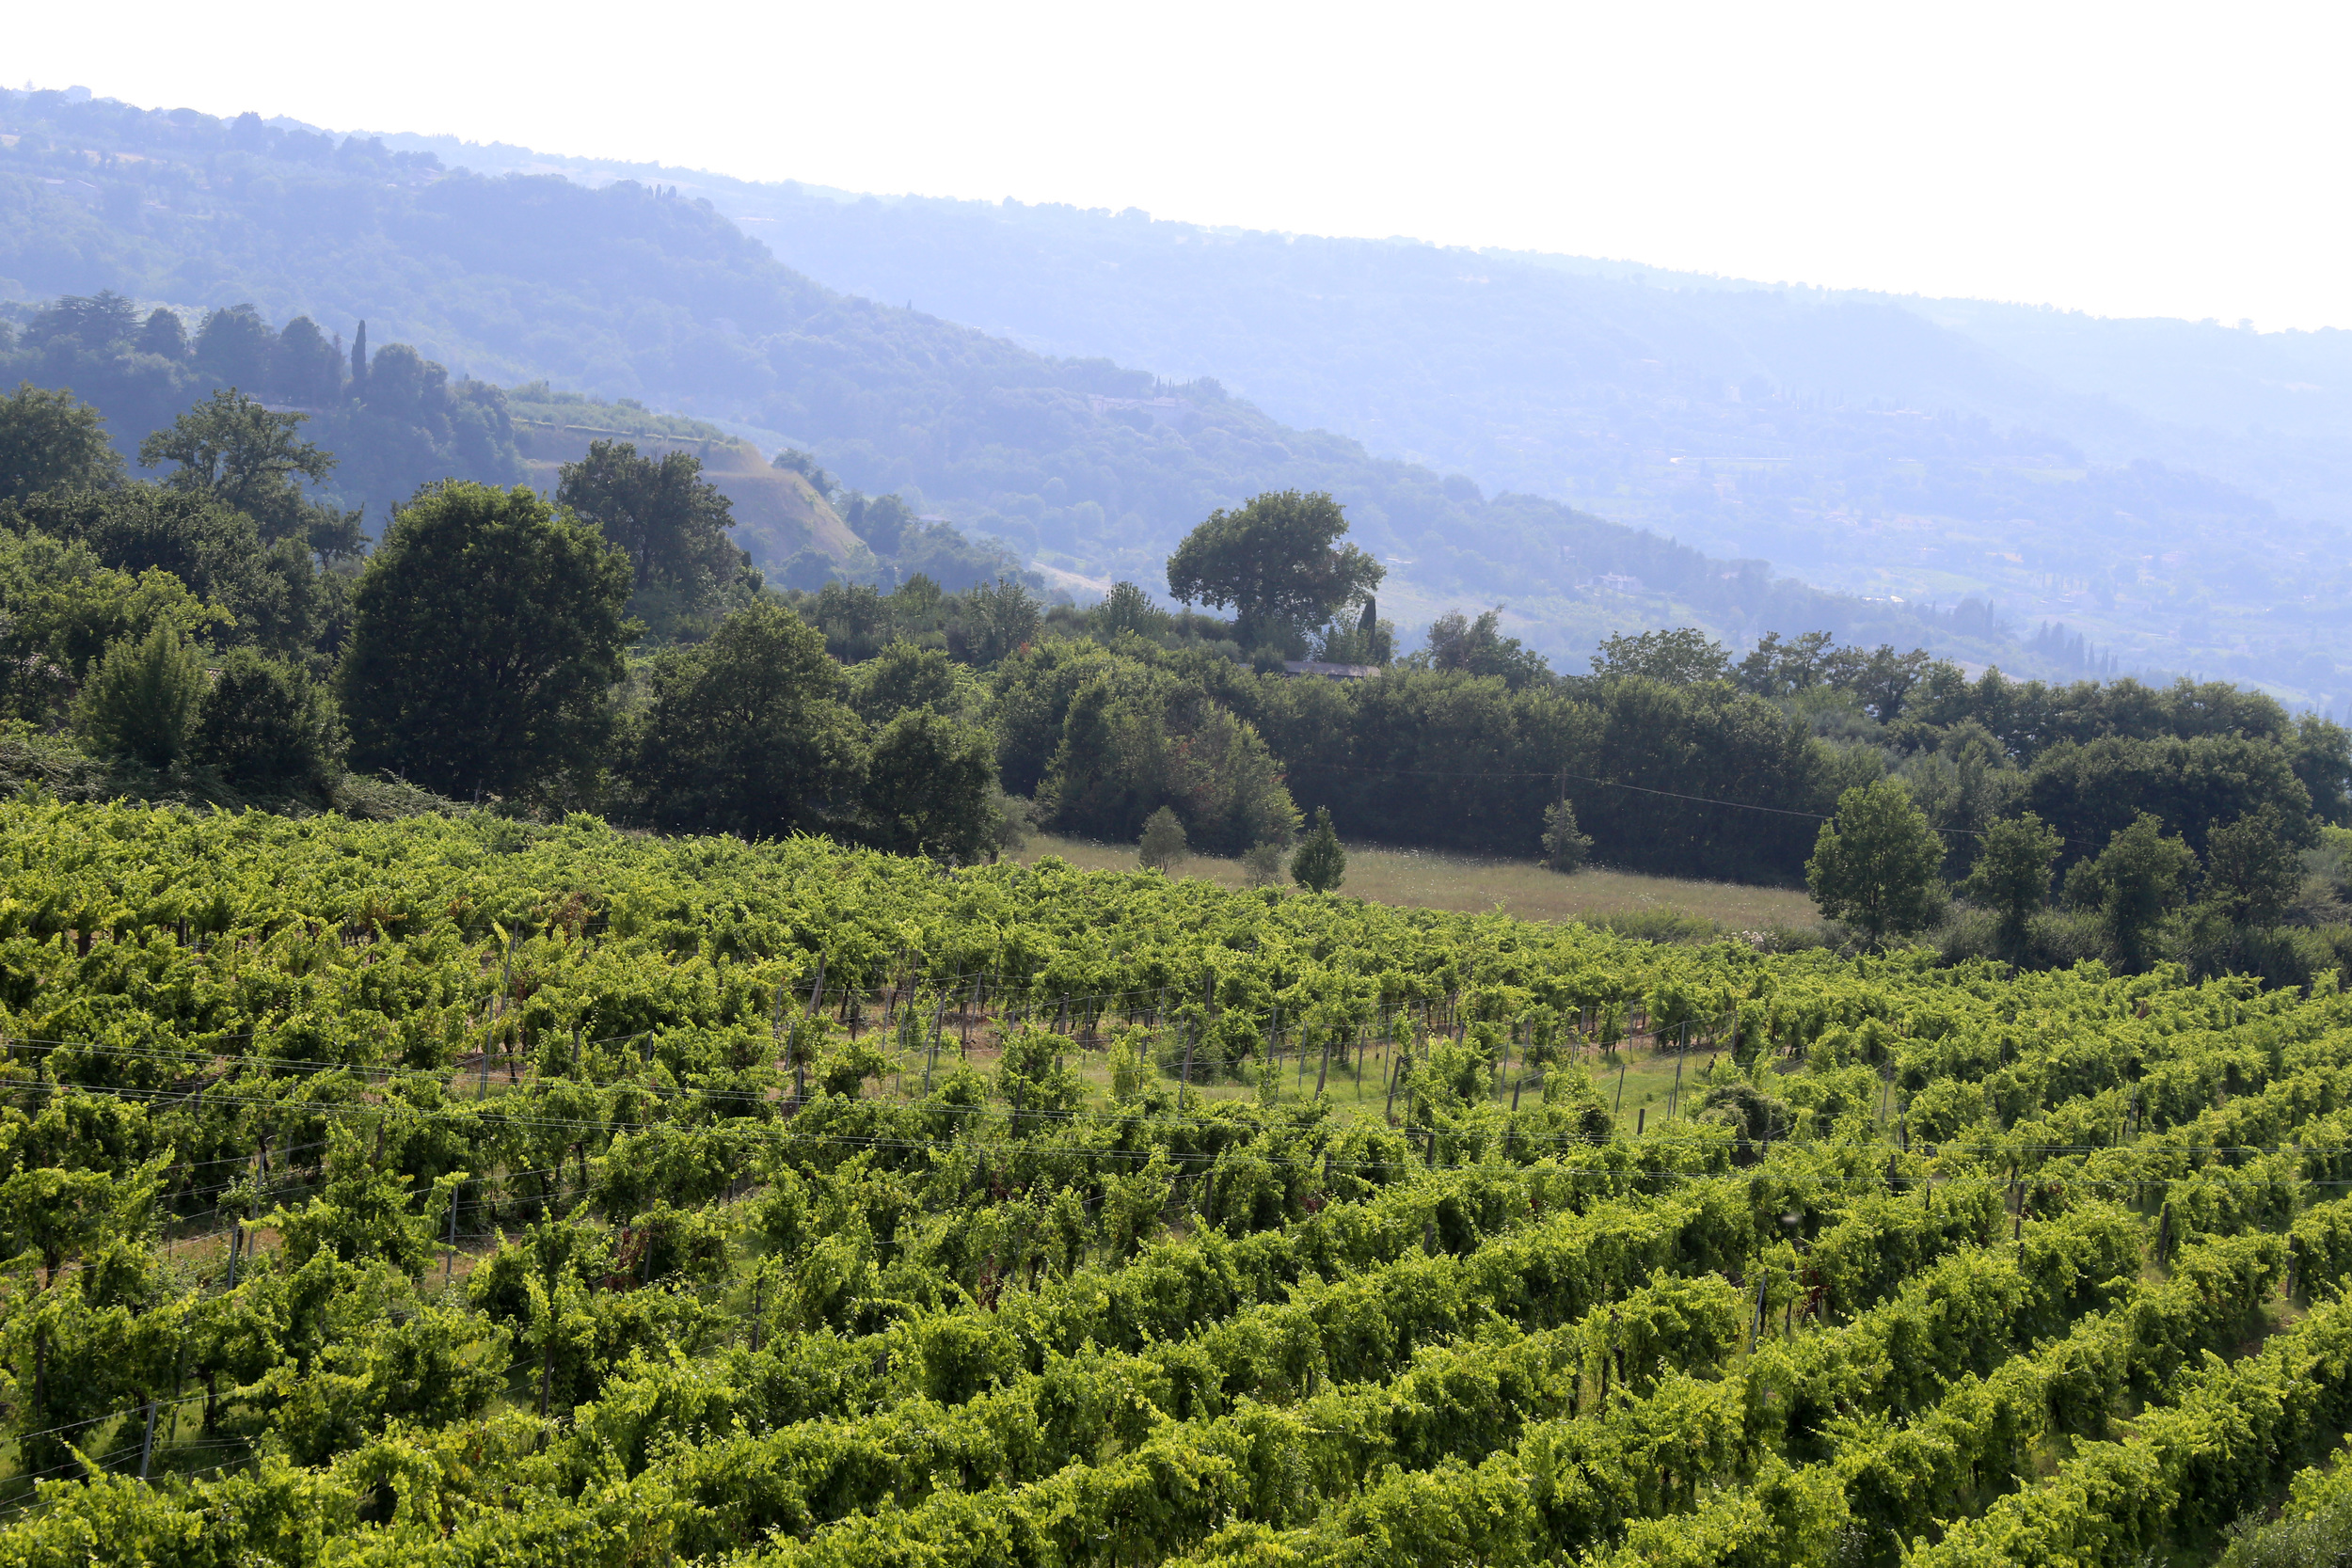 Vineyards in the rolling landscape opposite Orvieto (Photograph by Gianna Scavo).